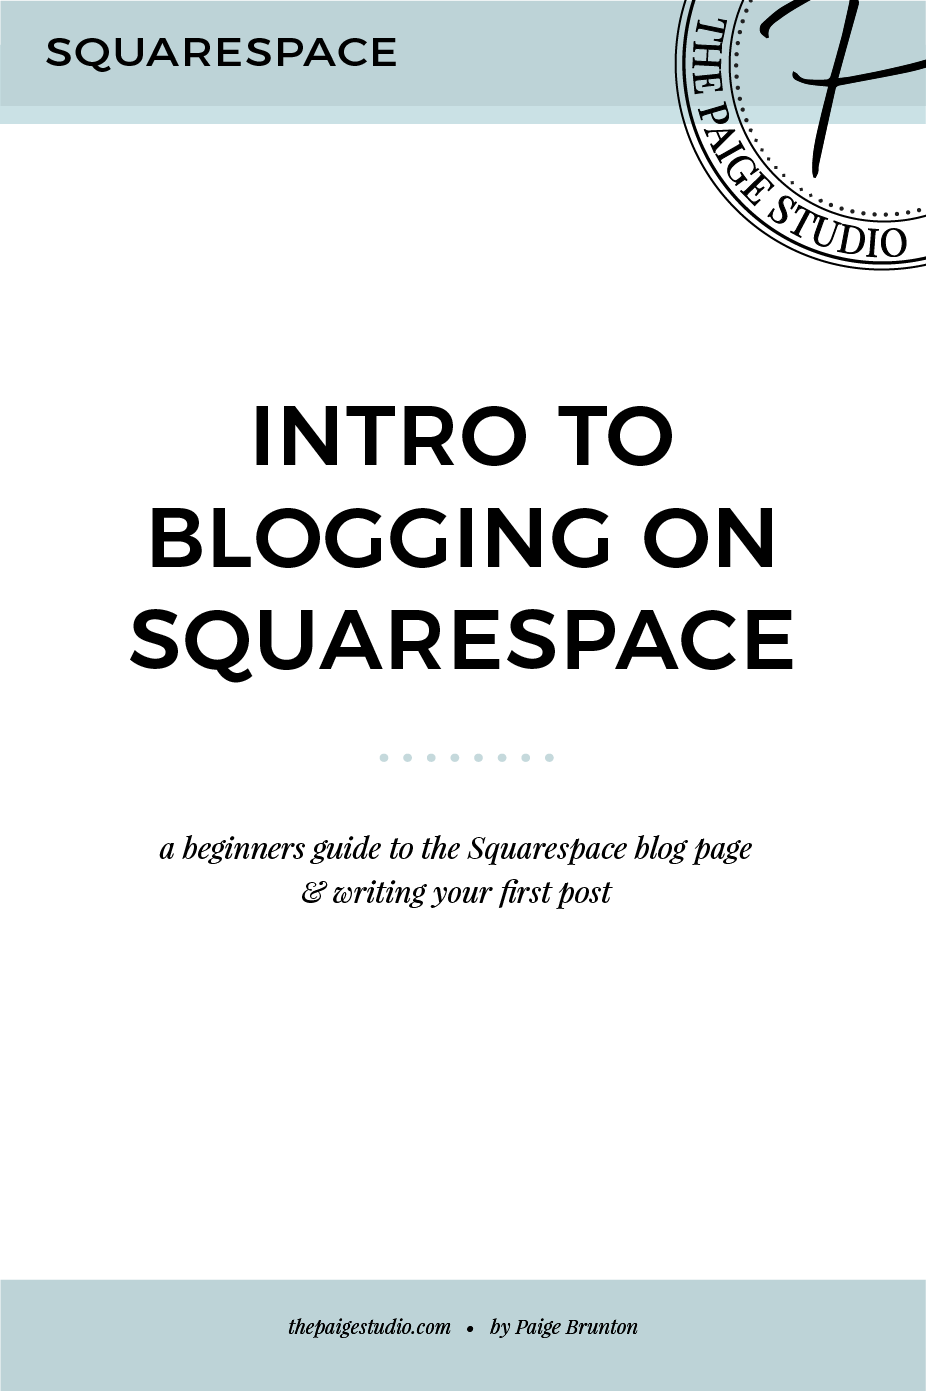 How to start blogging on Squarespace - intro video